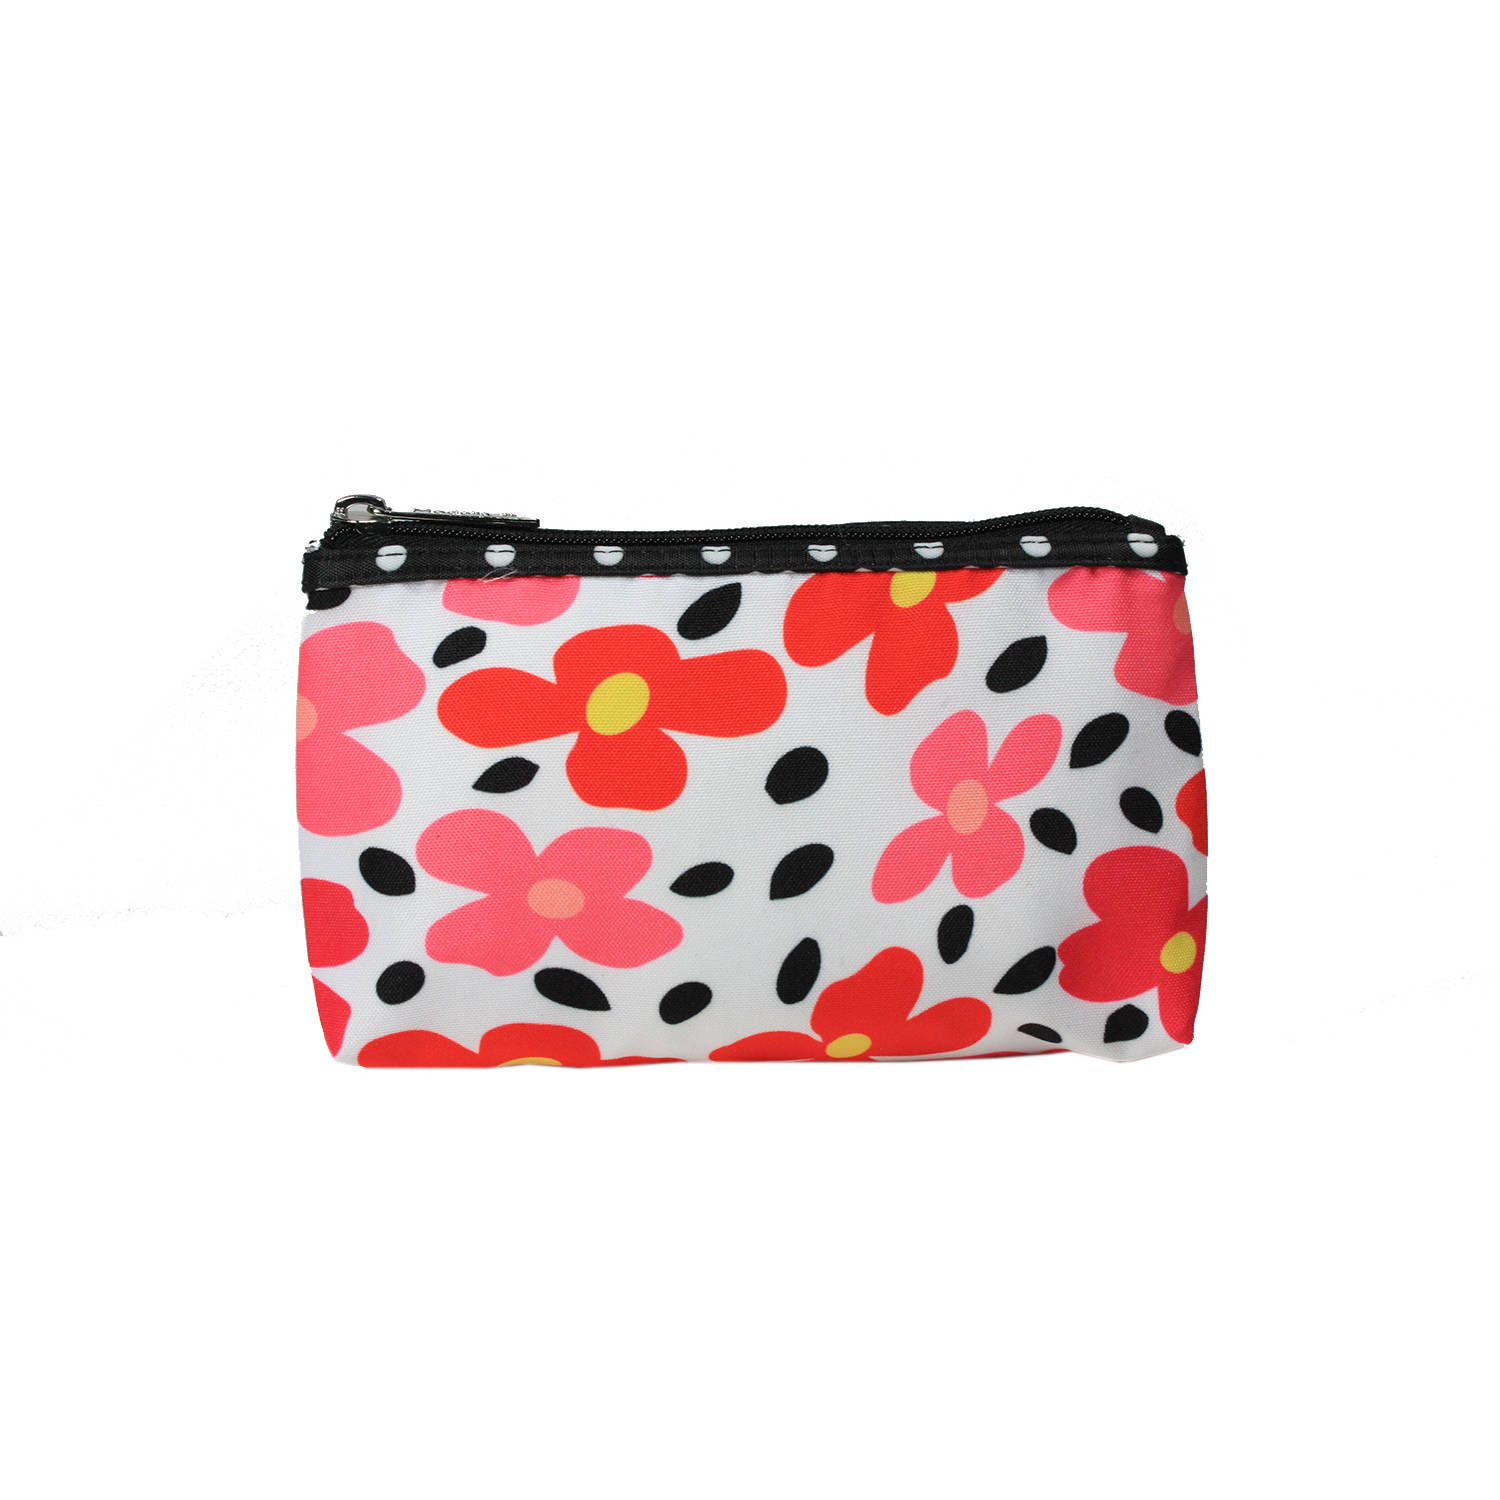 Modella Retro Bloom Purse Kit